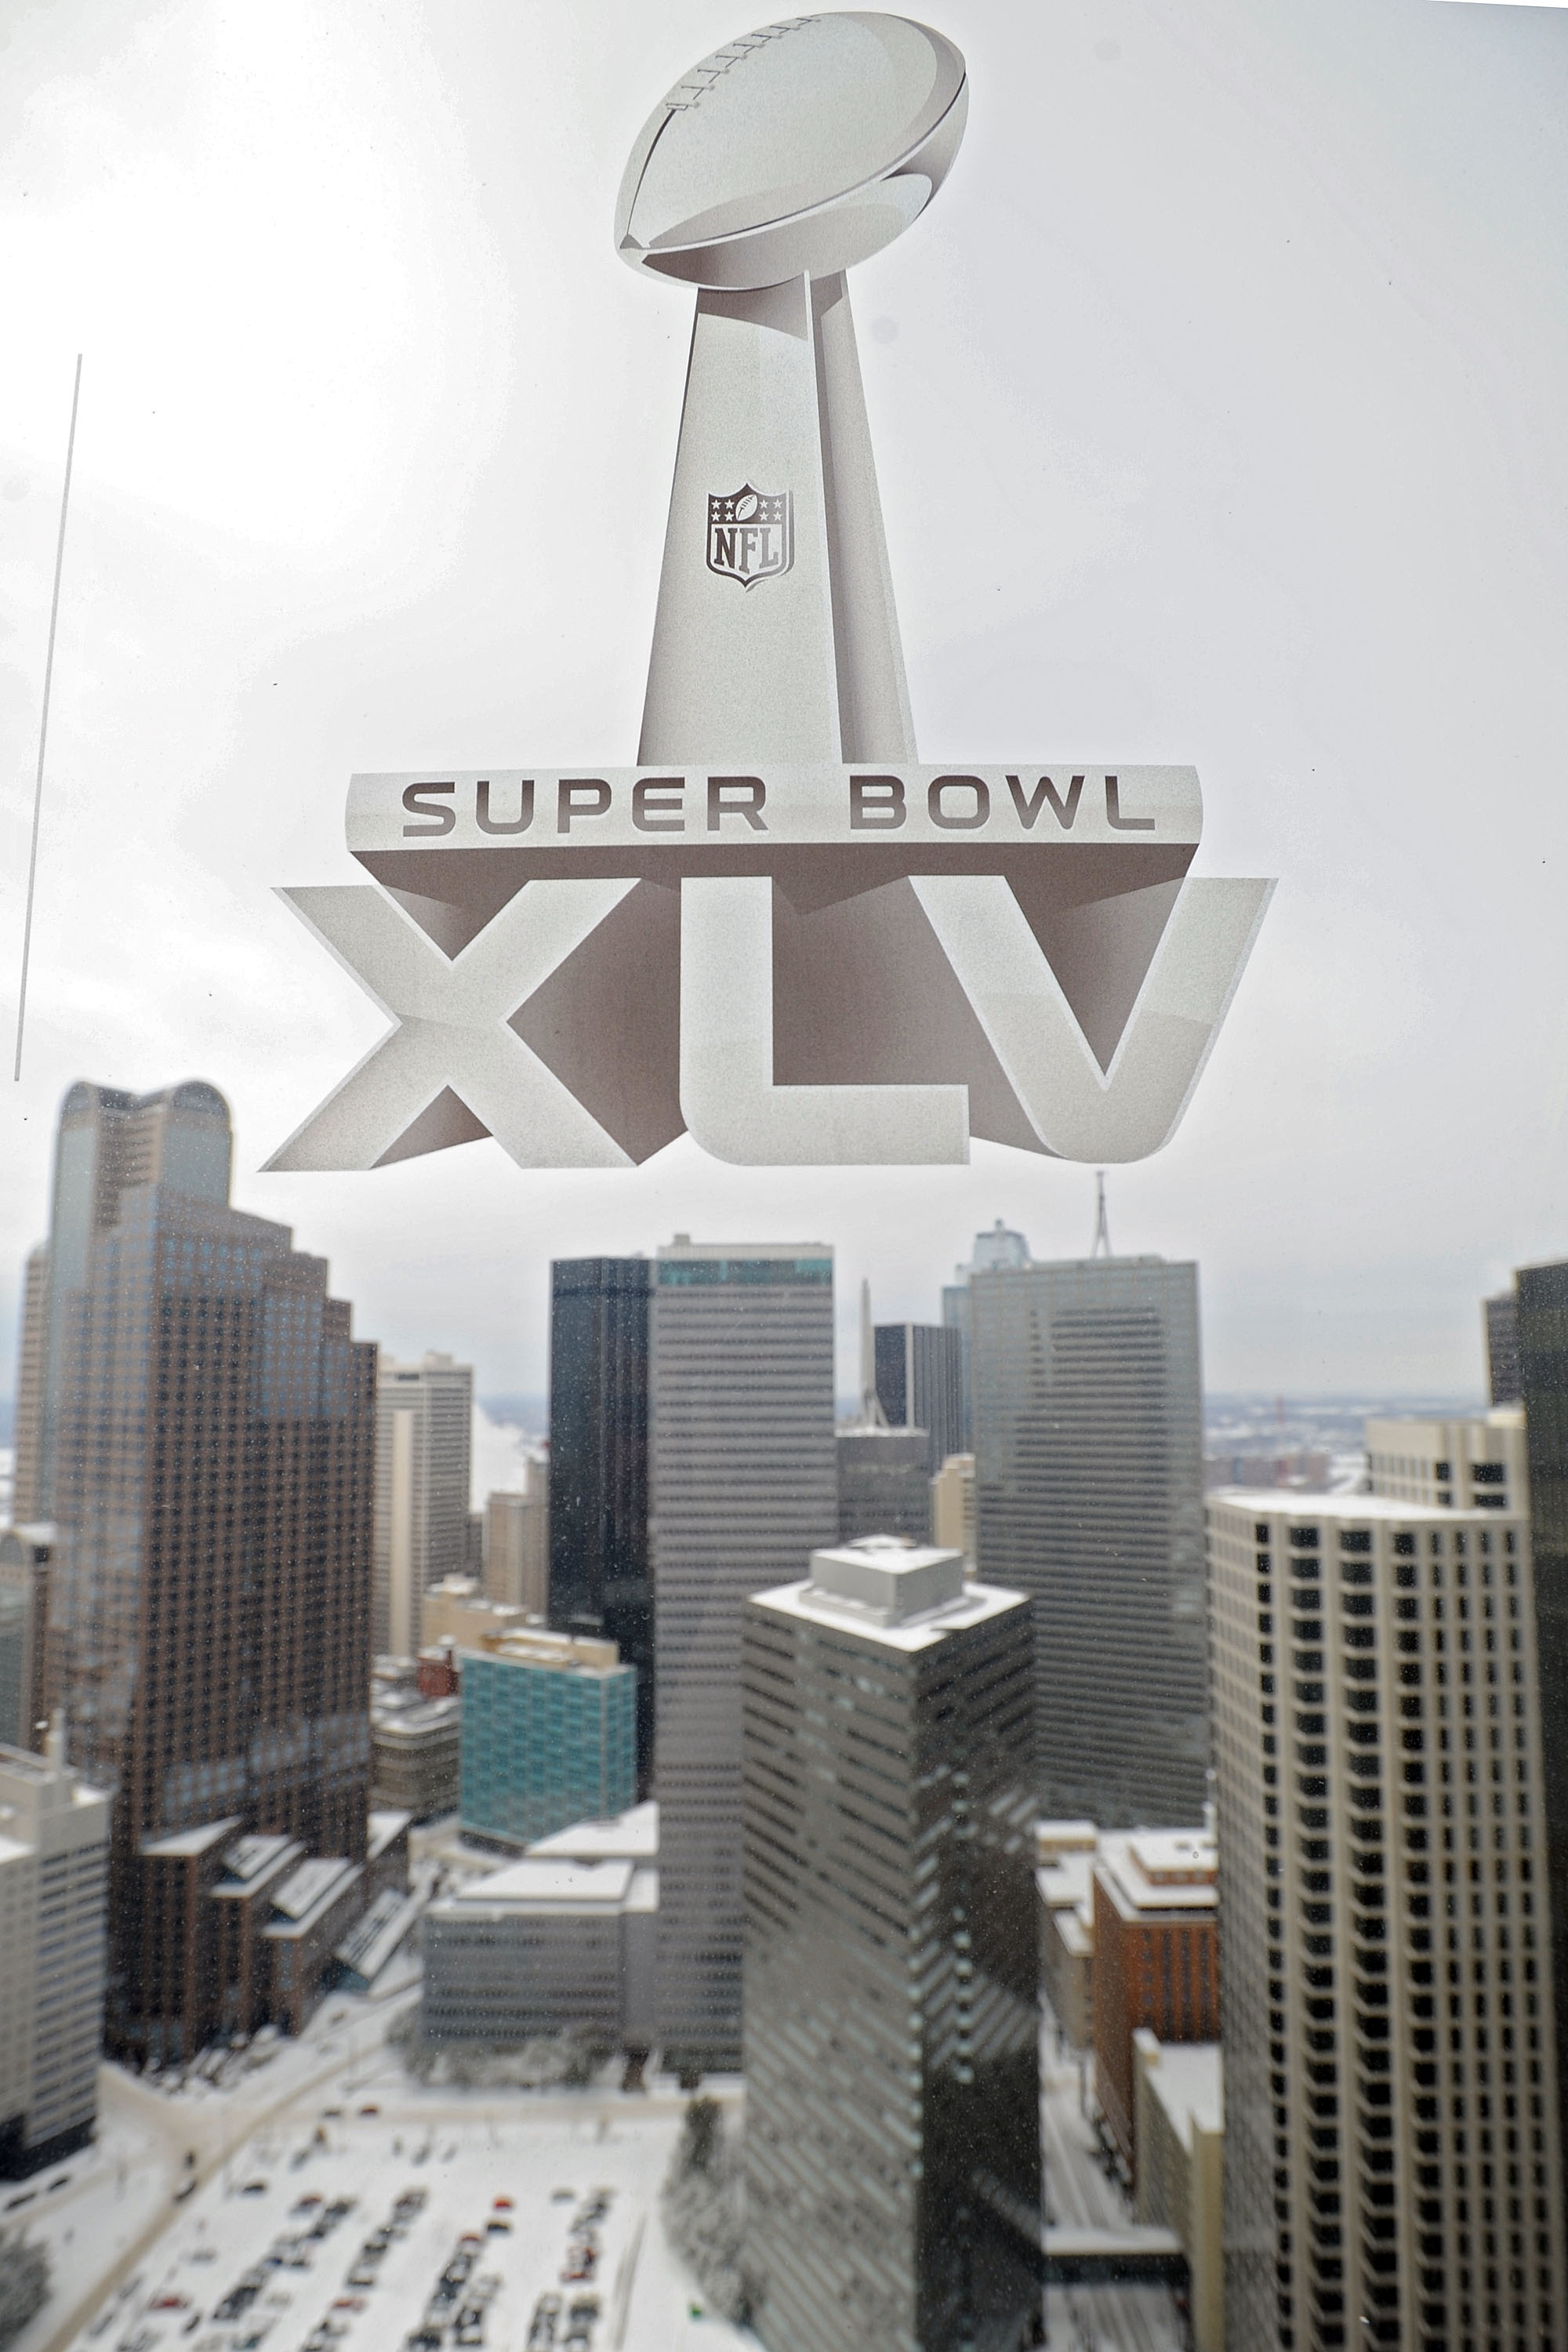 DALLAS, TX - FEBRUARY 04:  A Super Bowl XLV sticker is seen on a window over looking downtown Dallas on February 4, 2011 in Dallas, Texas. More than four inches of snow fell overnight in the North Texas area. The Green Bay Packers will play the Pittsburgh